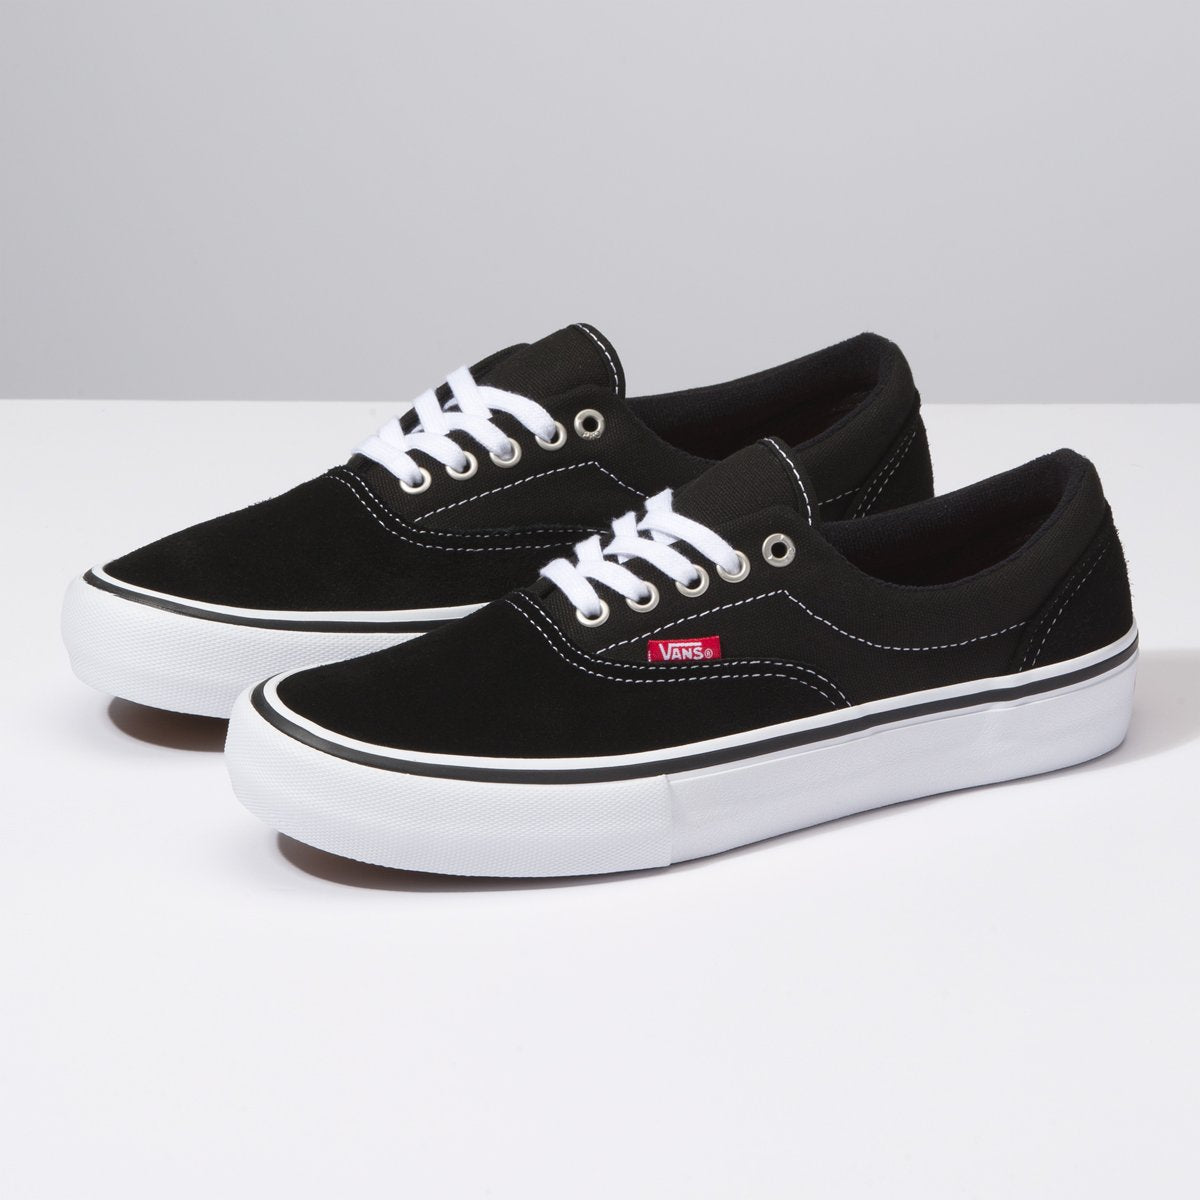 Zapatillas Vans Era Pro - Black/White/Gum - Vans